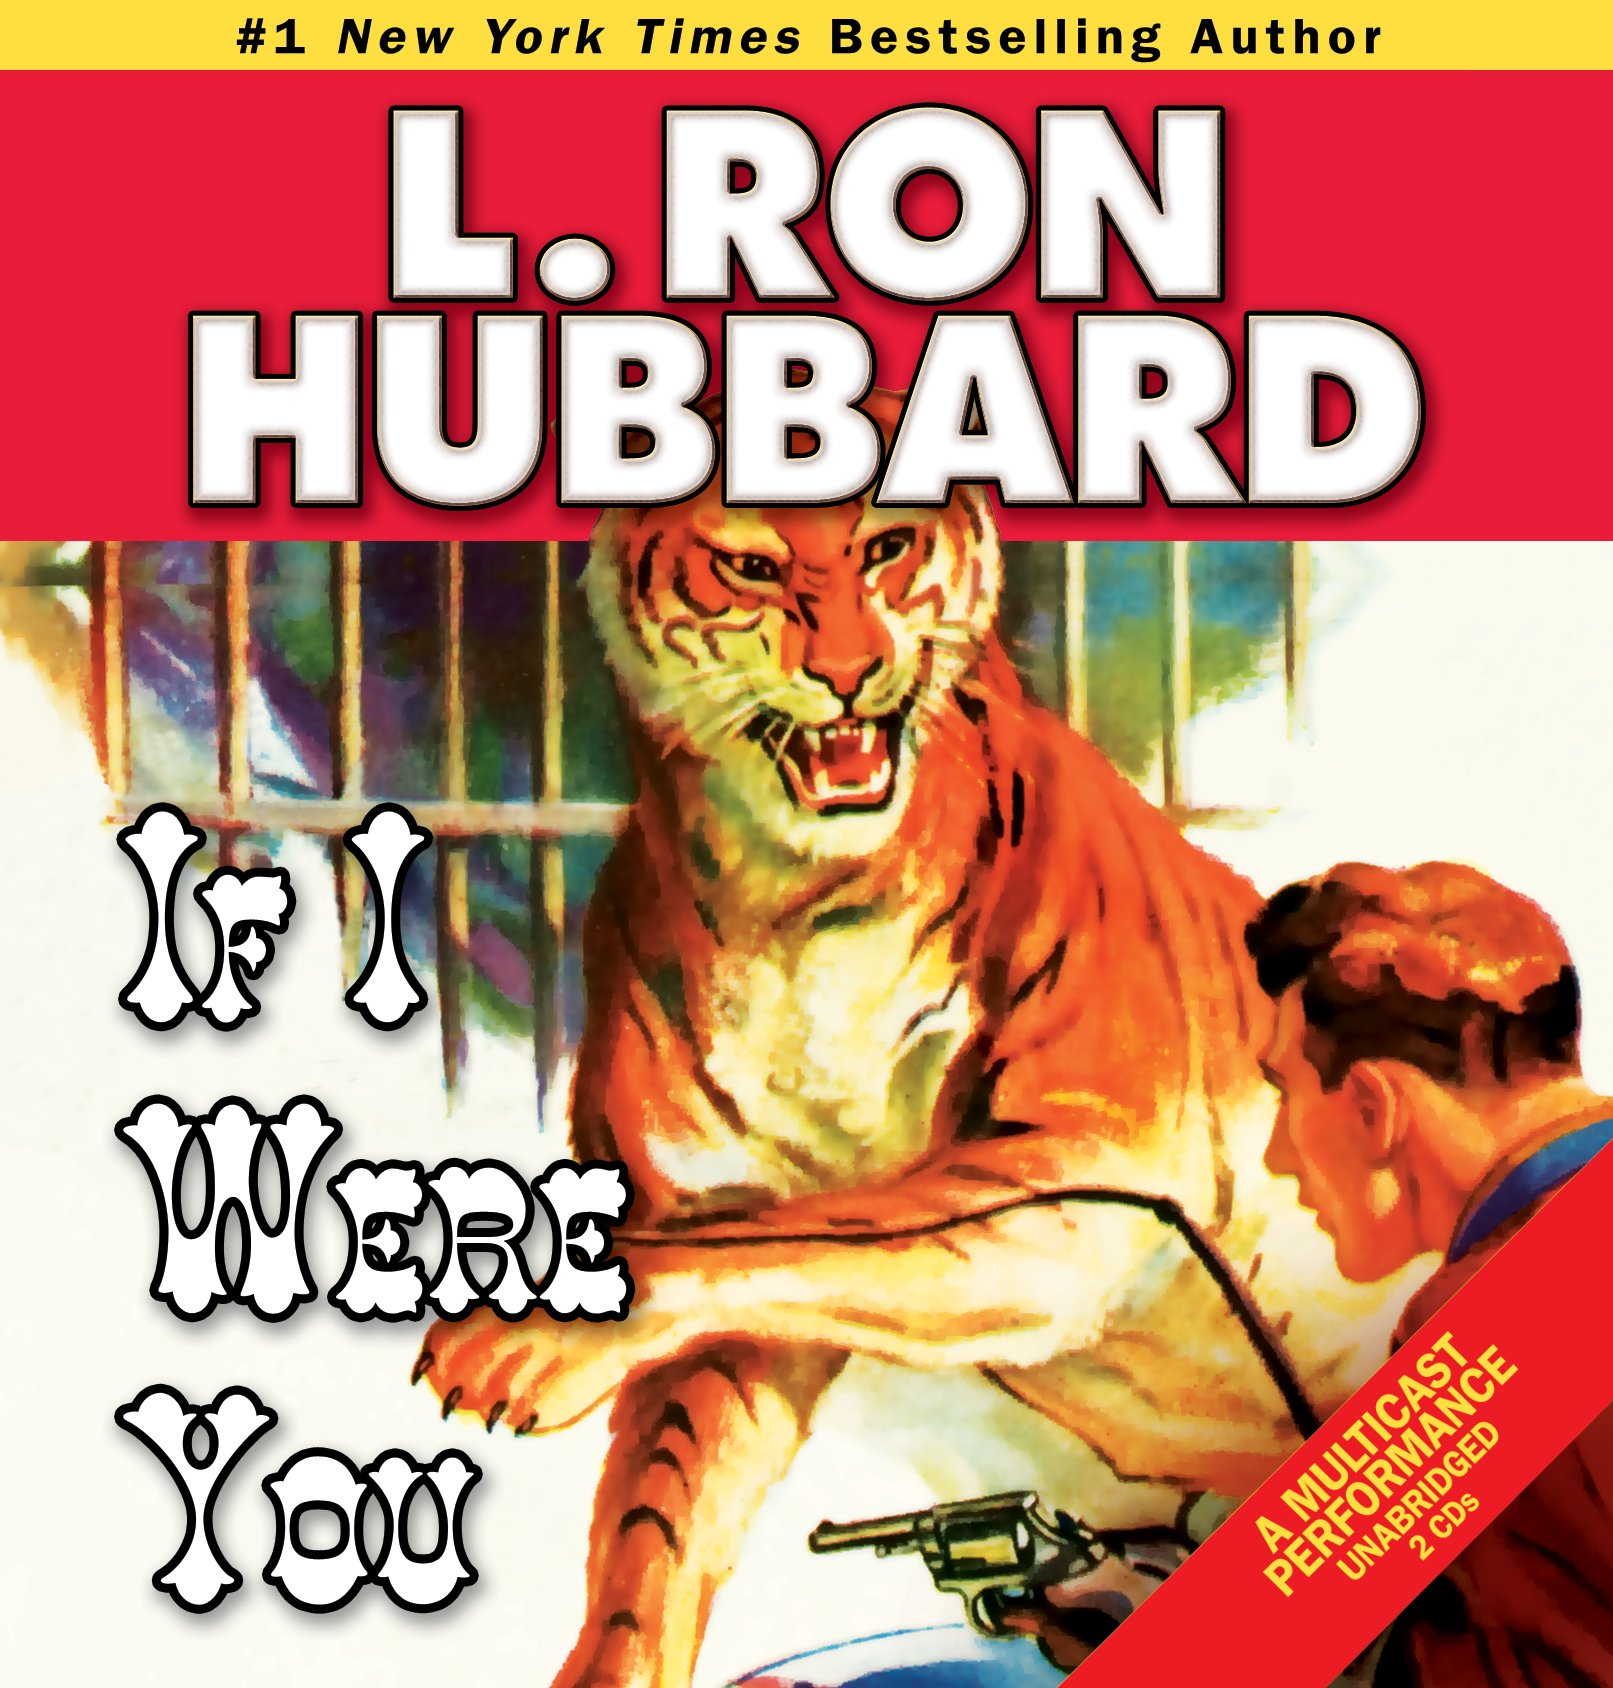 If I Were You (Stories from the Golden Age): Amazon.es ...